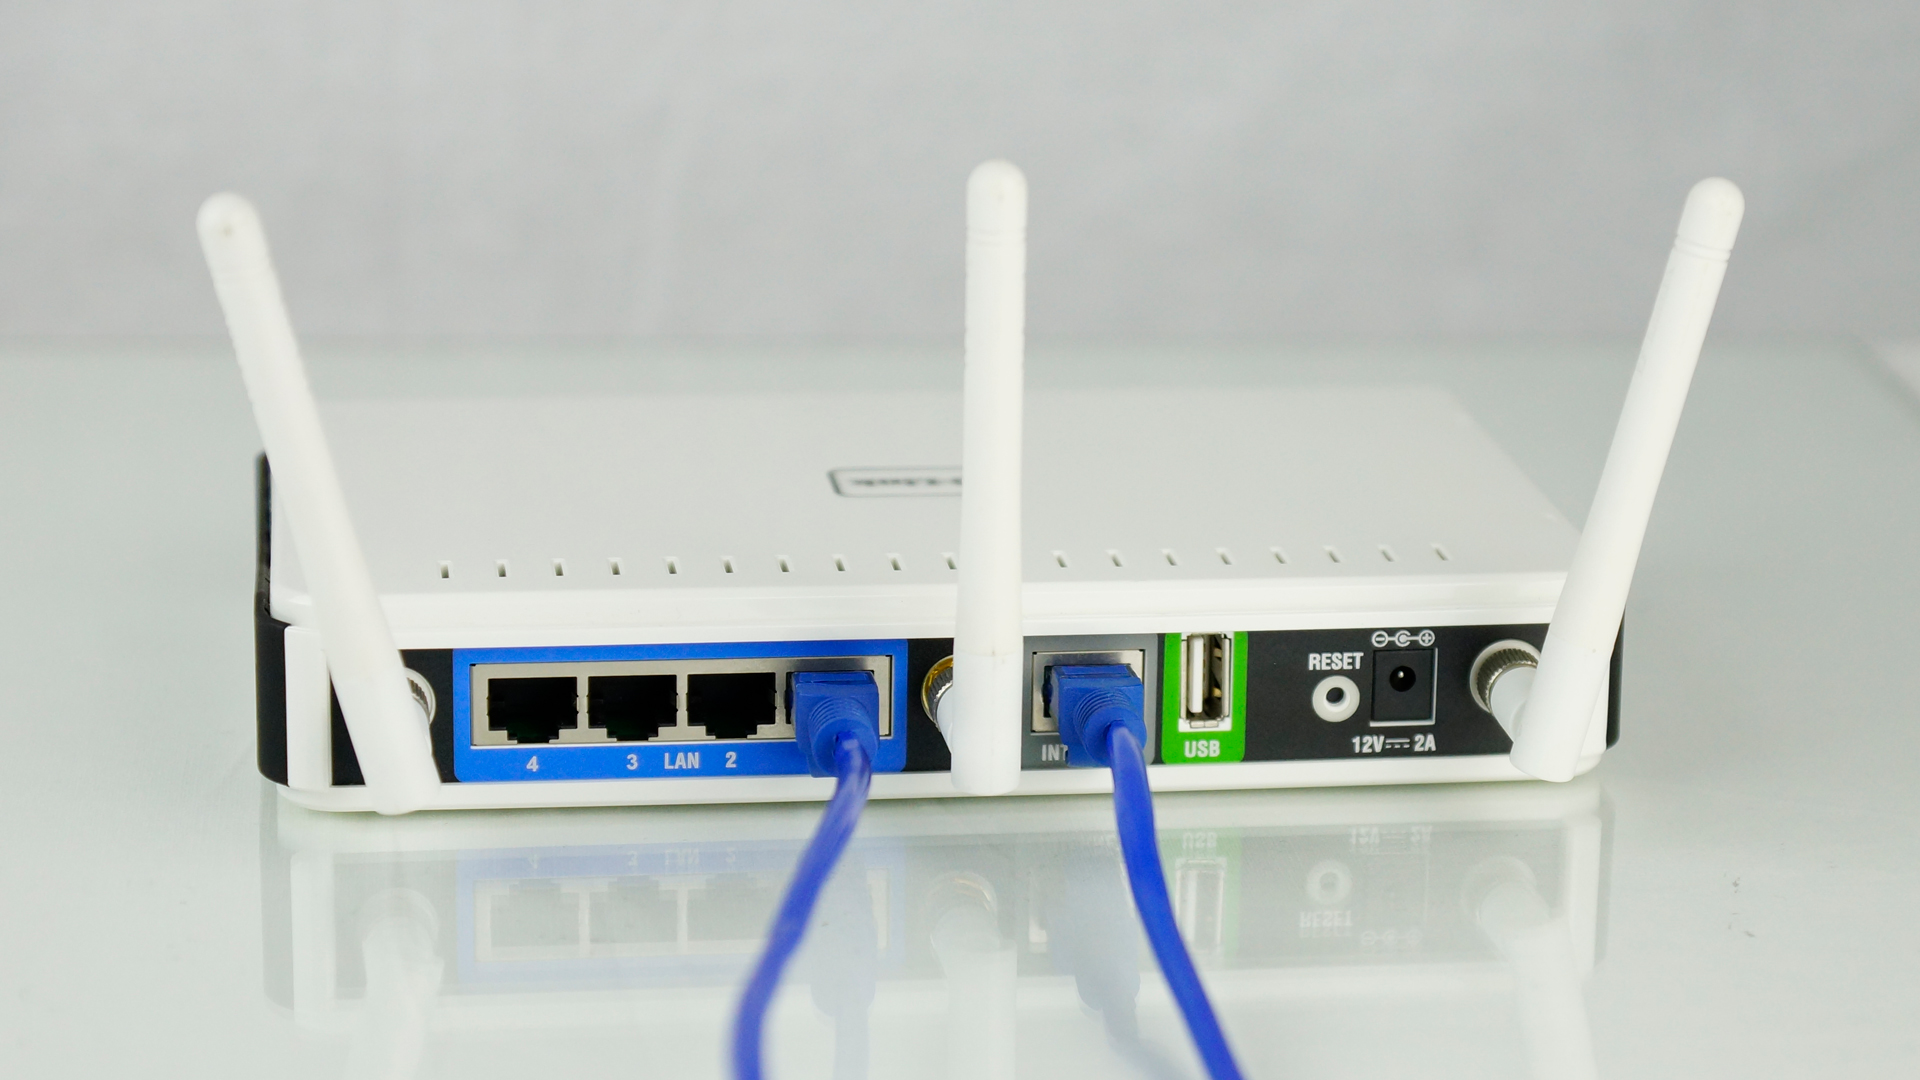 Connect Ethernet Cable to the Internet Router